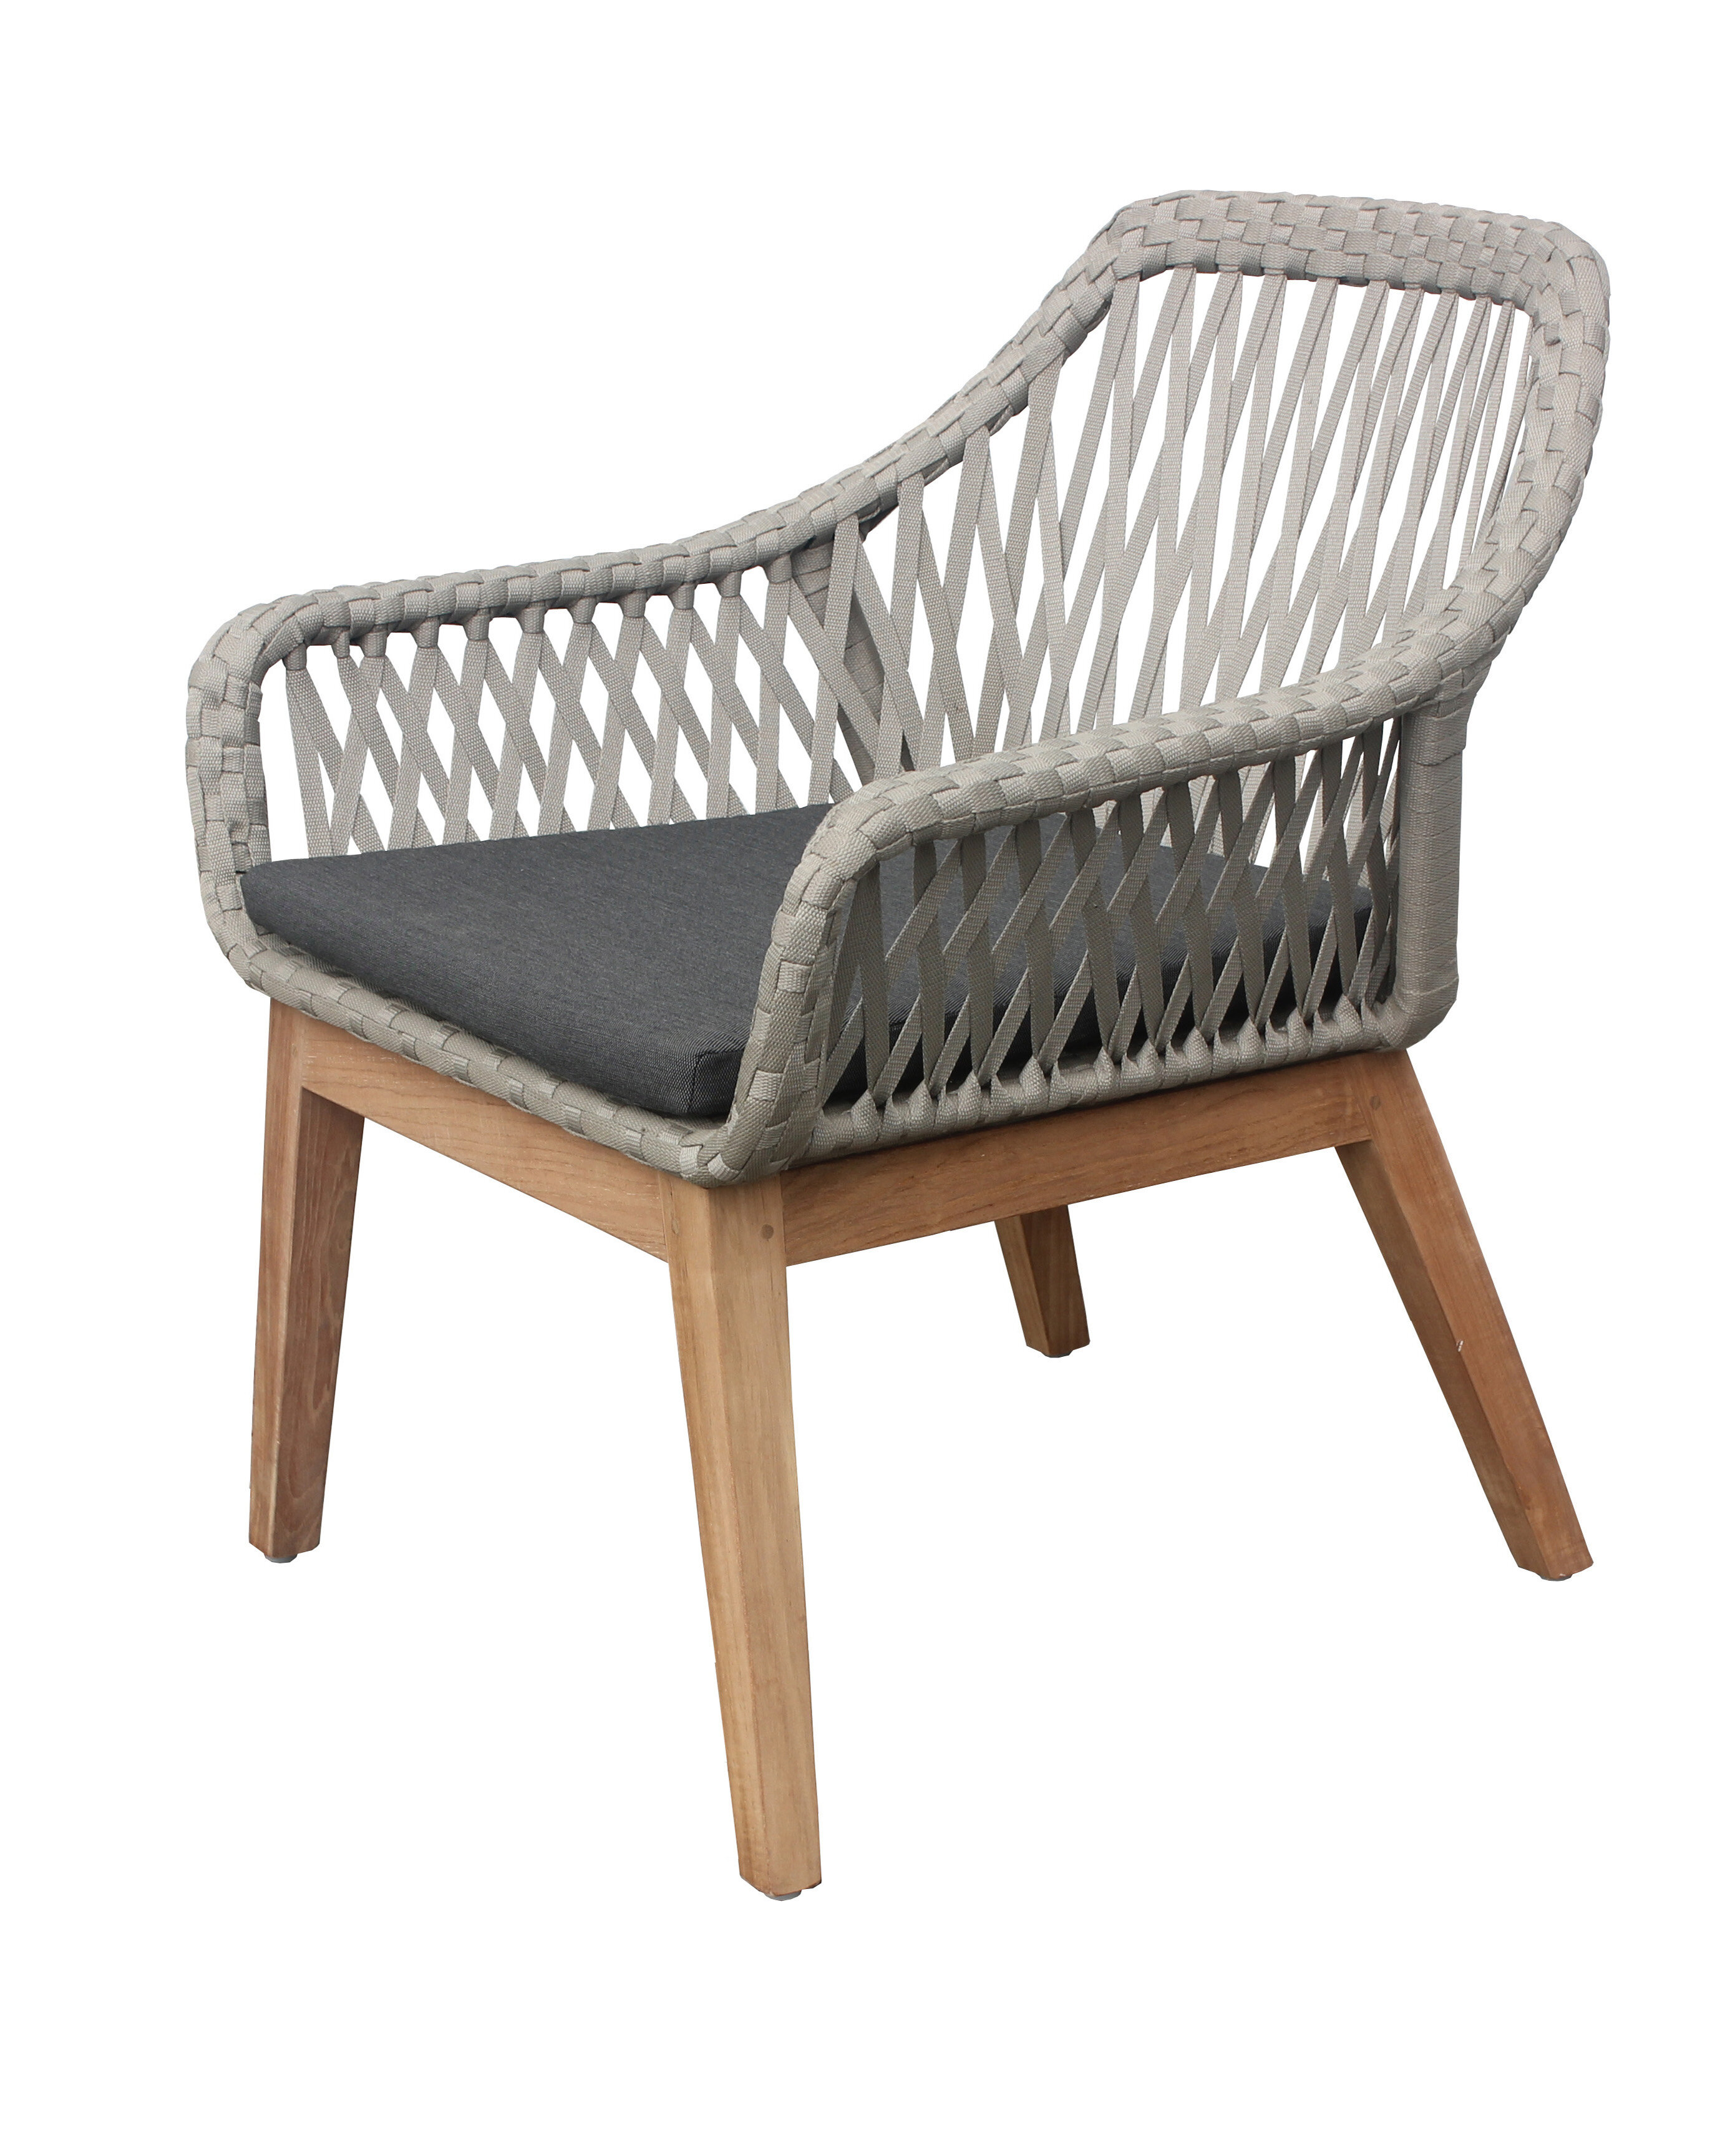 bungalow rose alena teak patio chair with cushion wayfair rh wayfair com teak patio chairs discount teak patio chair cushions